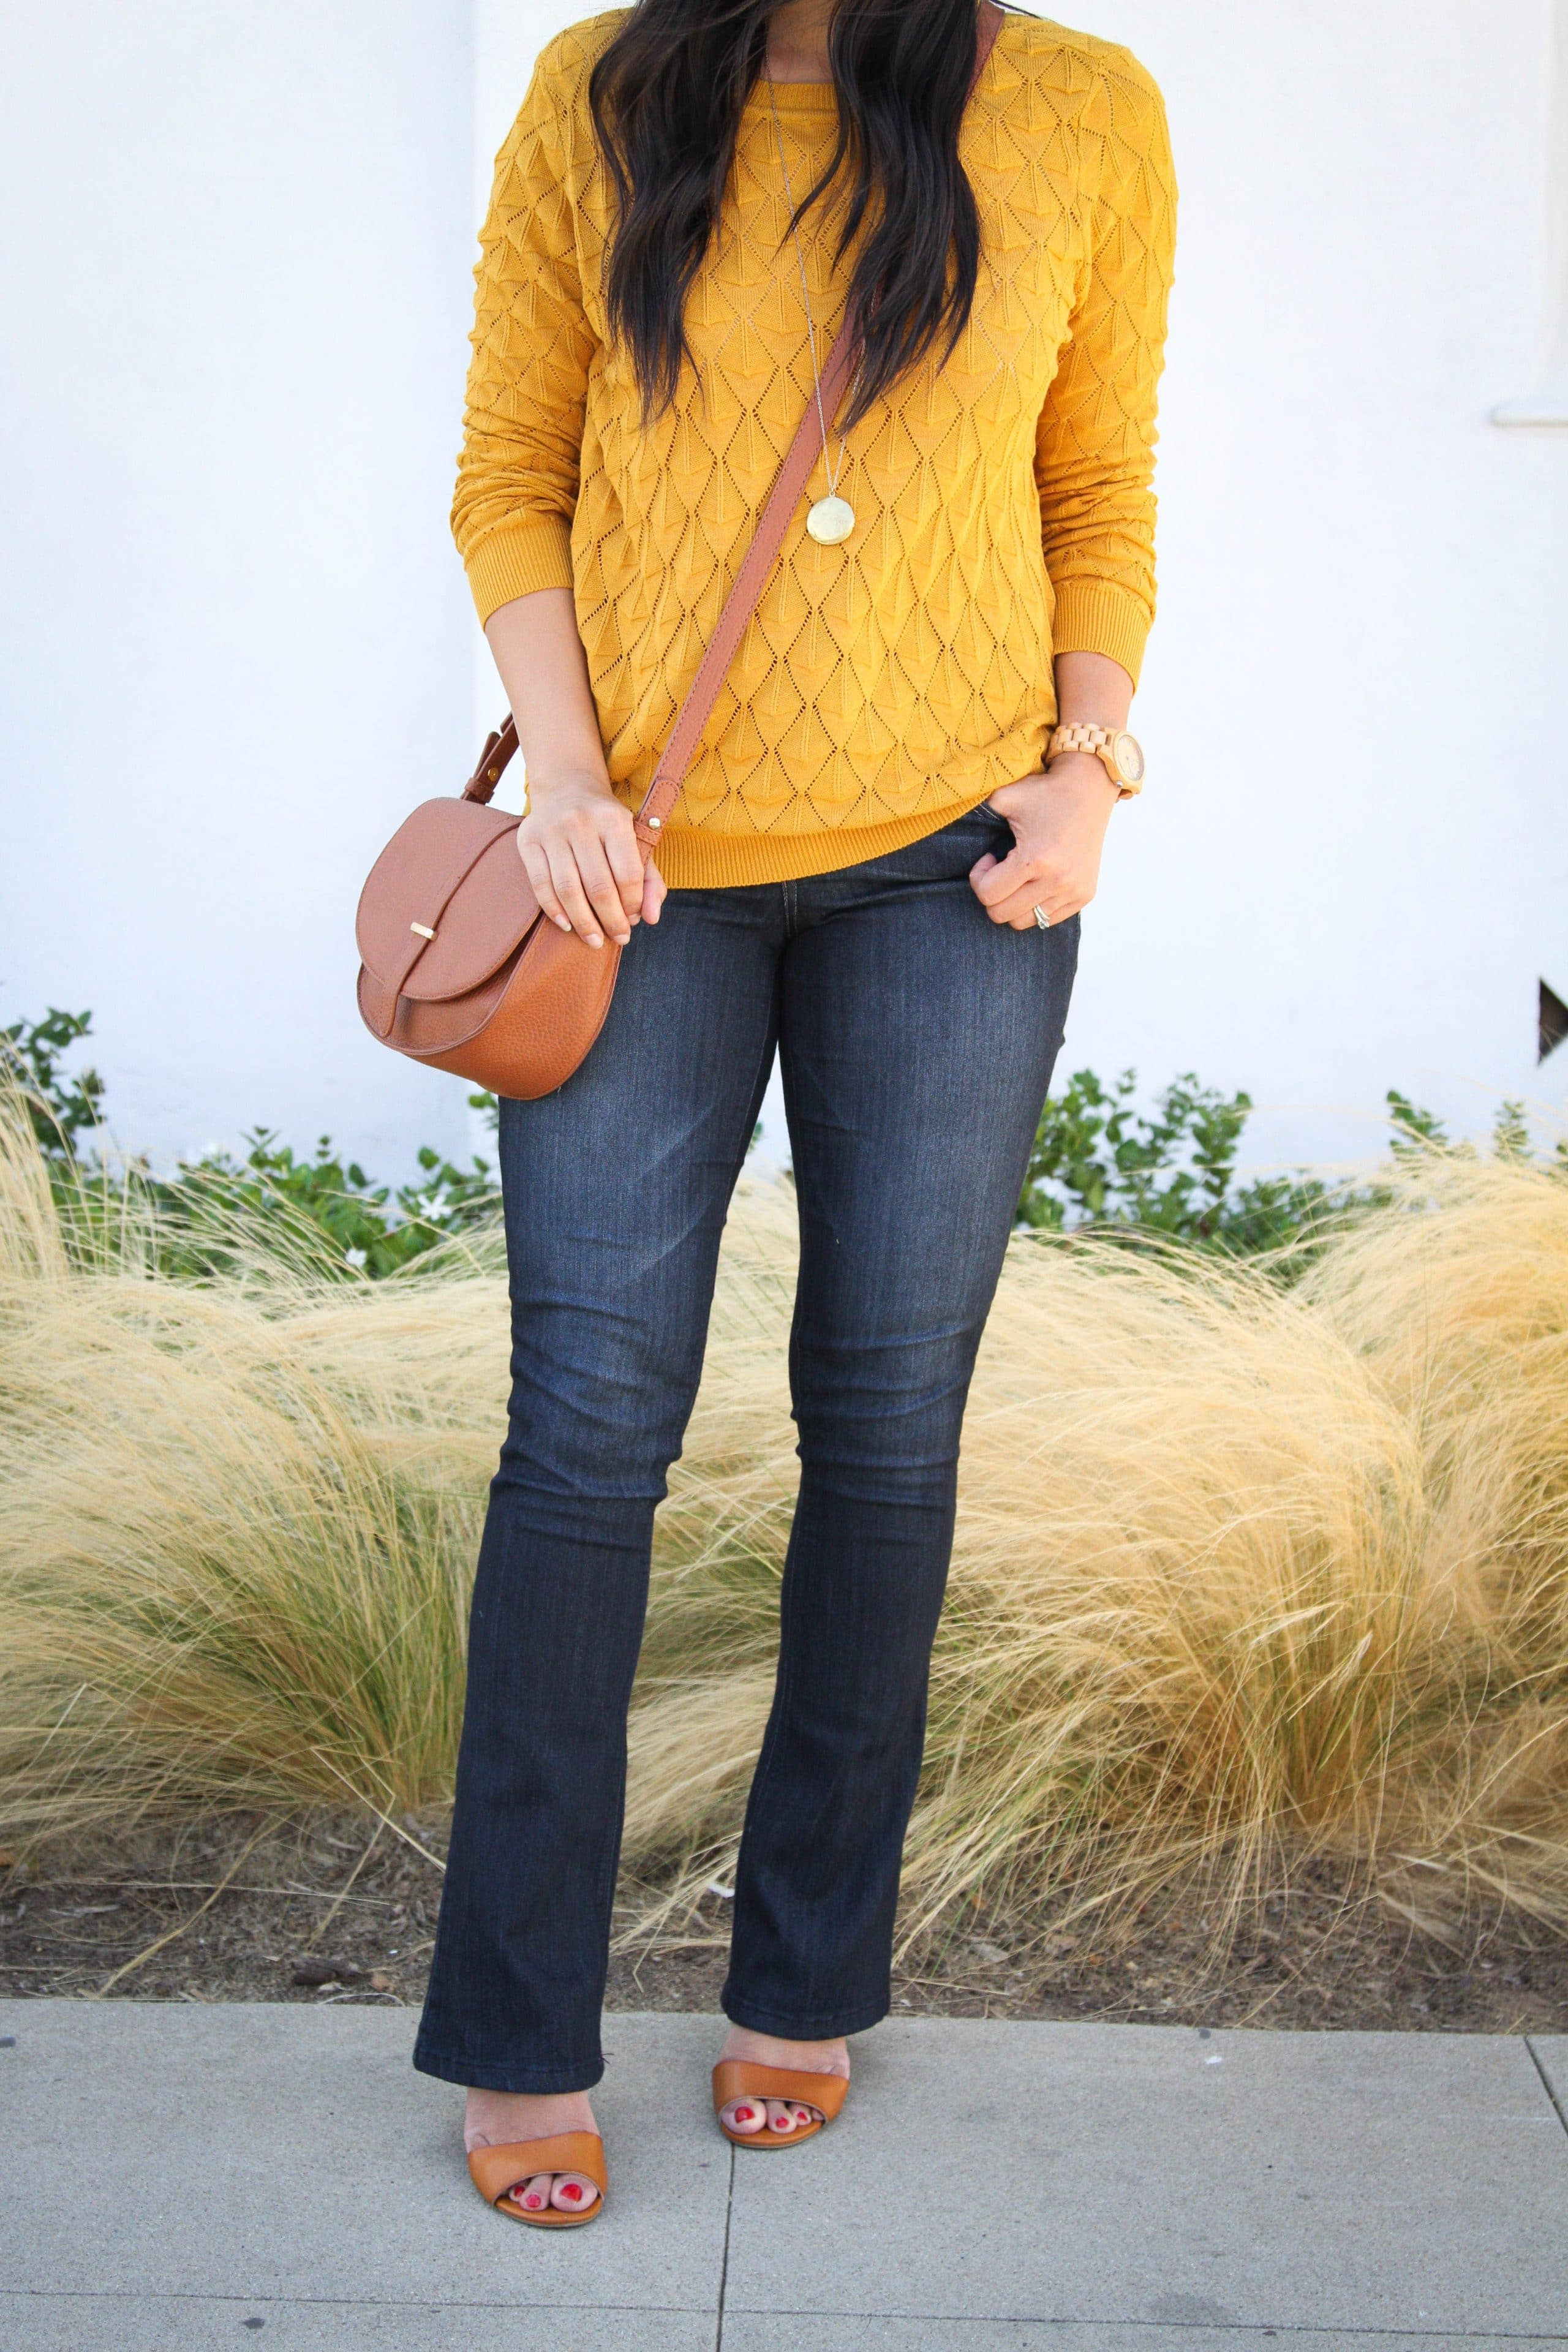 bootcut jeans + mustard sweater + wedges